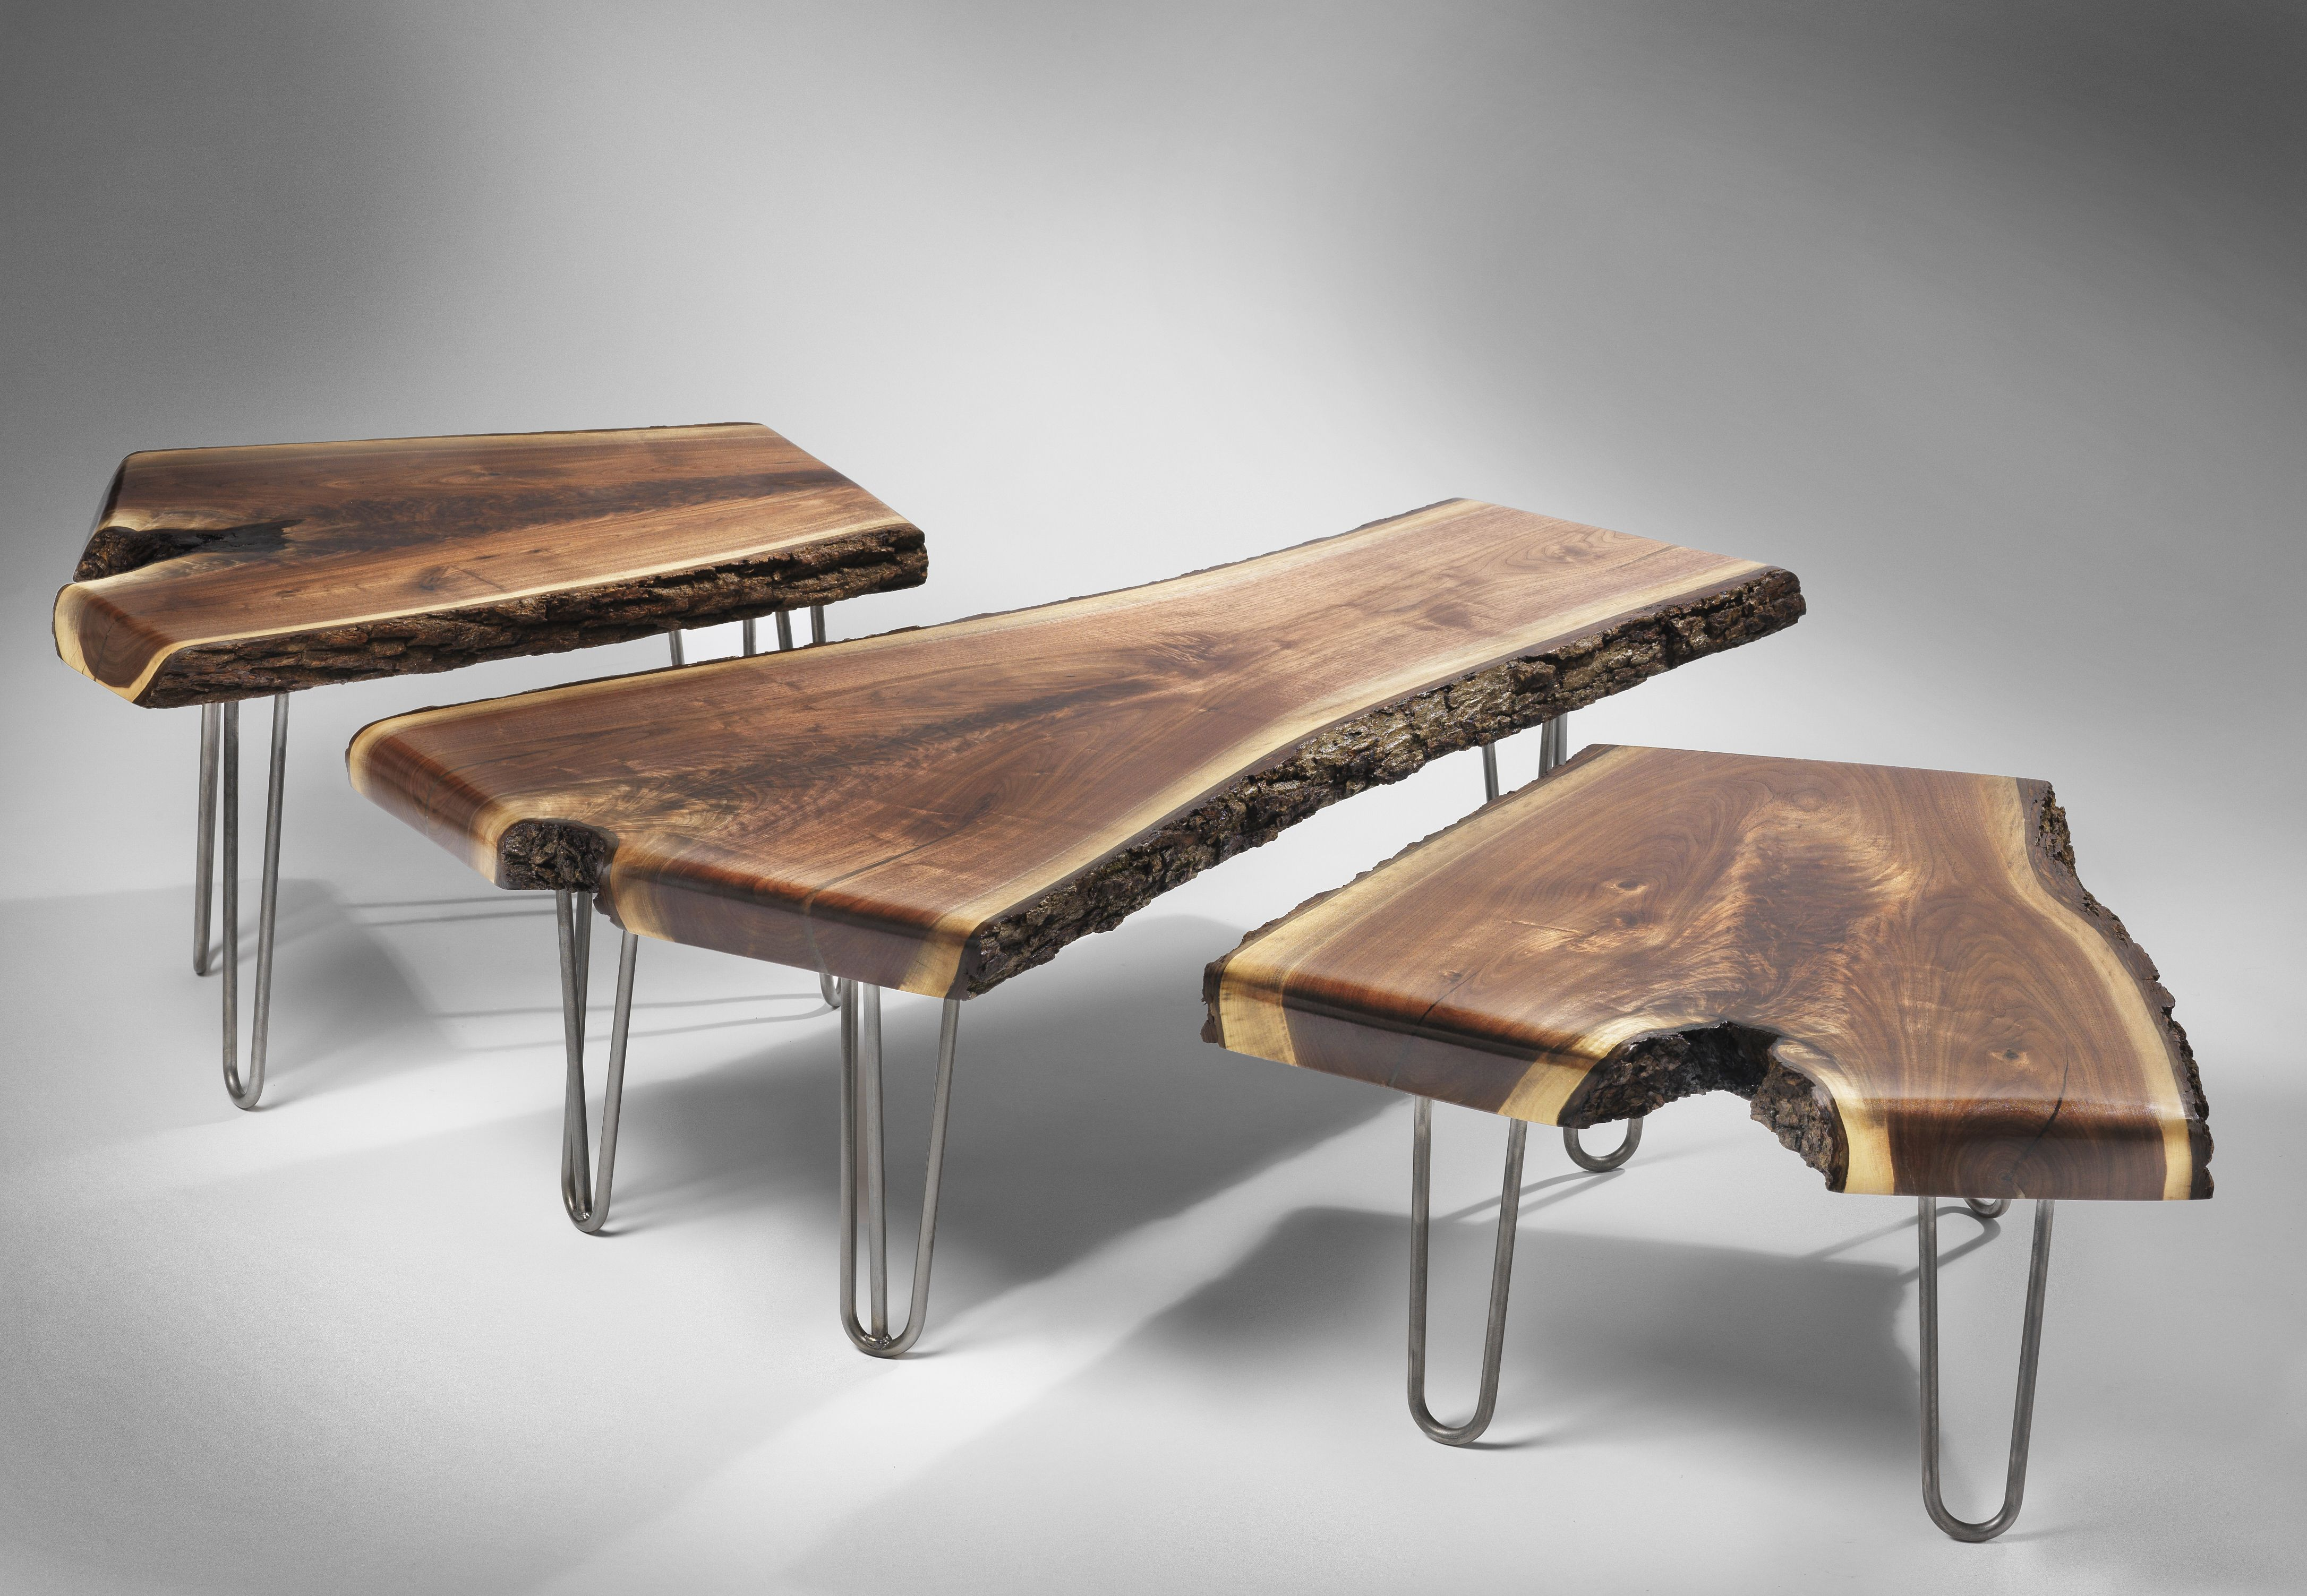 3 Rod Hairpin Legs Wood And Metal Table Coffee Table Wood Metal Table [ 3006 x 4344 Pixel ]